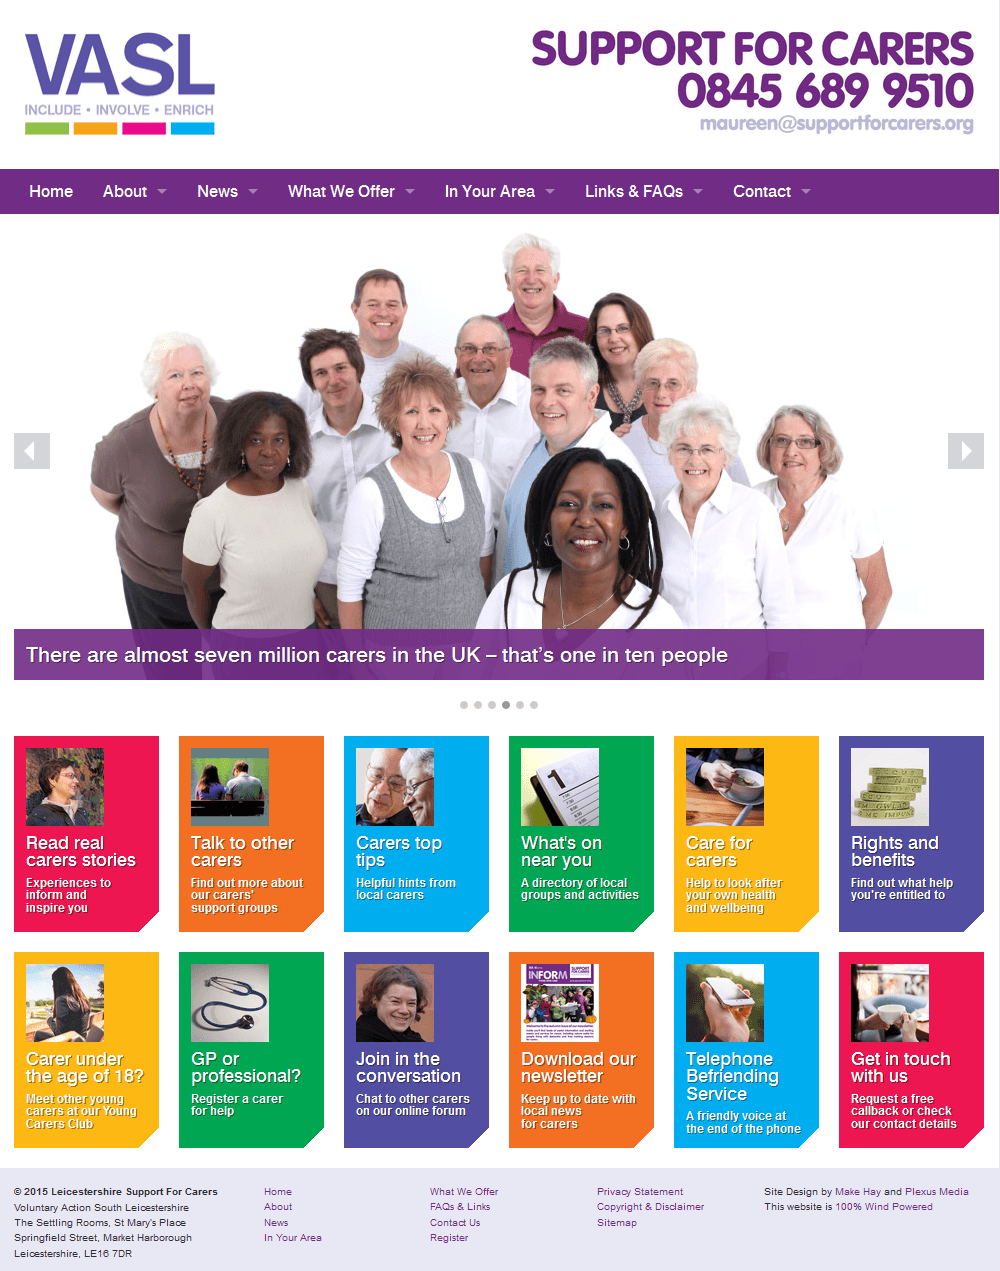 Support for Carers Support for carers home page